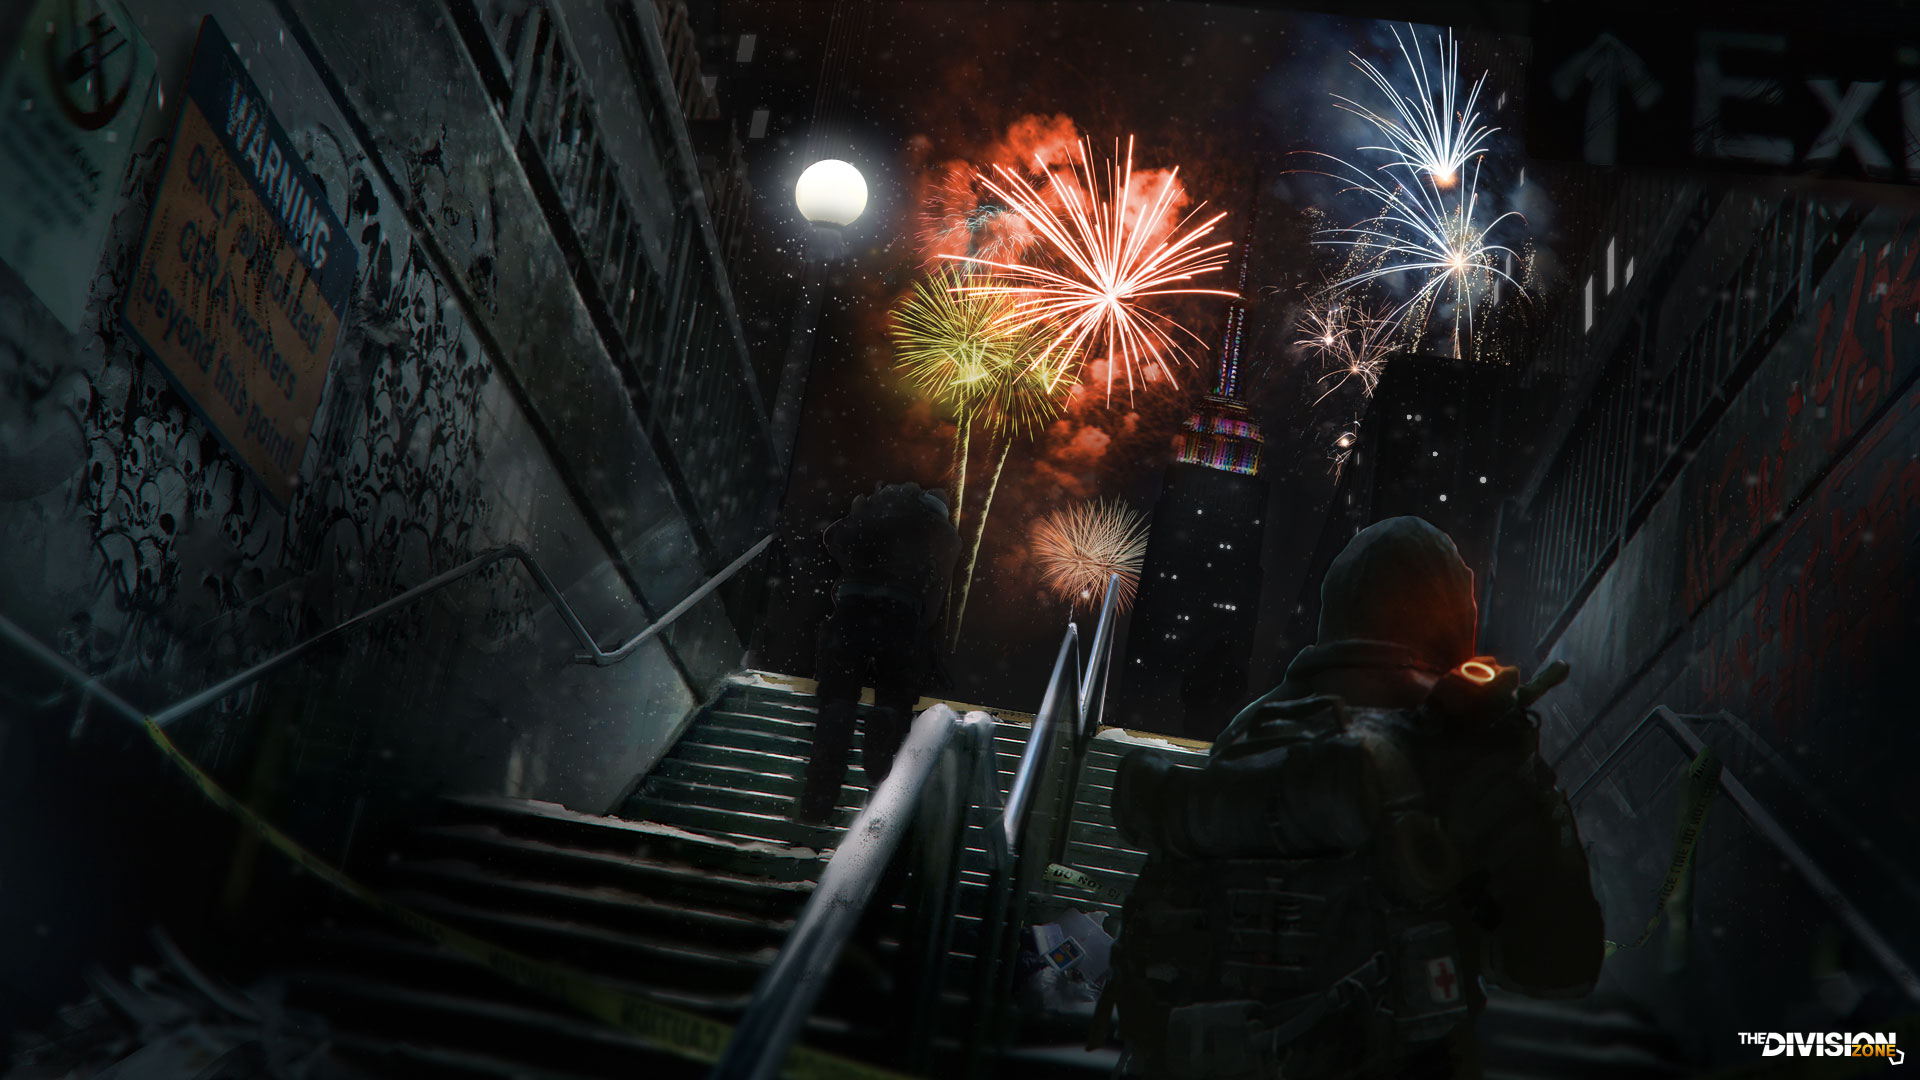 the-division-happy-new-year-15-wallpaper-nt